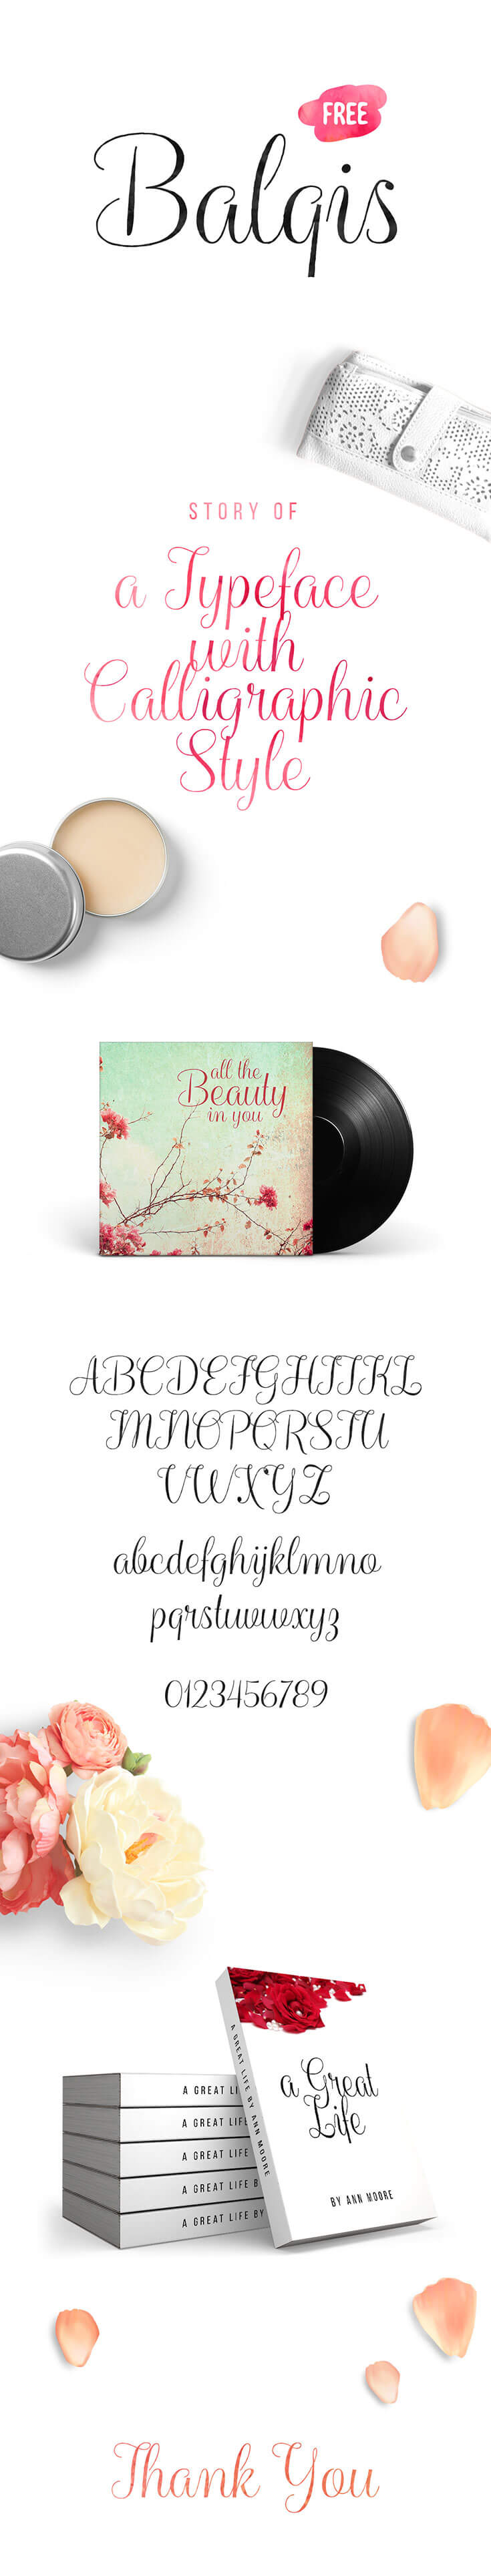 #Free Balqis #Calligraphy #Font is a feminine striped-rough calligraphy typeface that presents a casual and natural feeling. It has a high contrast and very legible as a script font. It is suitable for wedding invitations, greeting card designs, logos, or everything you may think it suits.